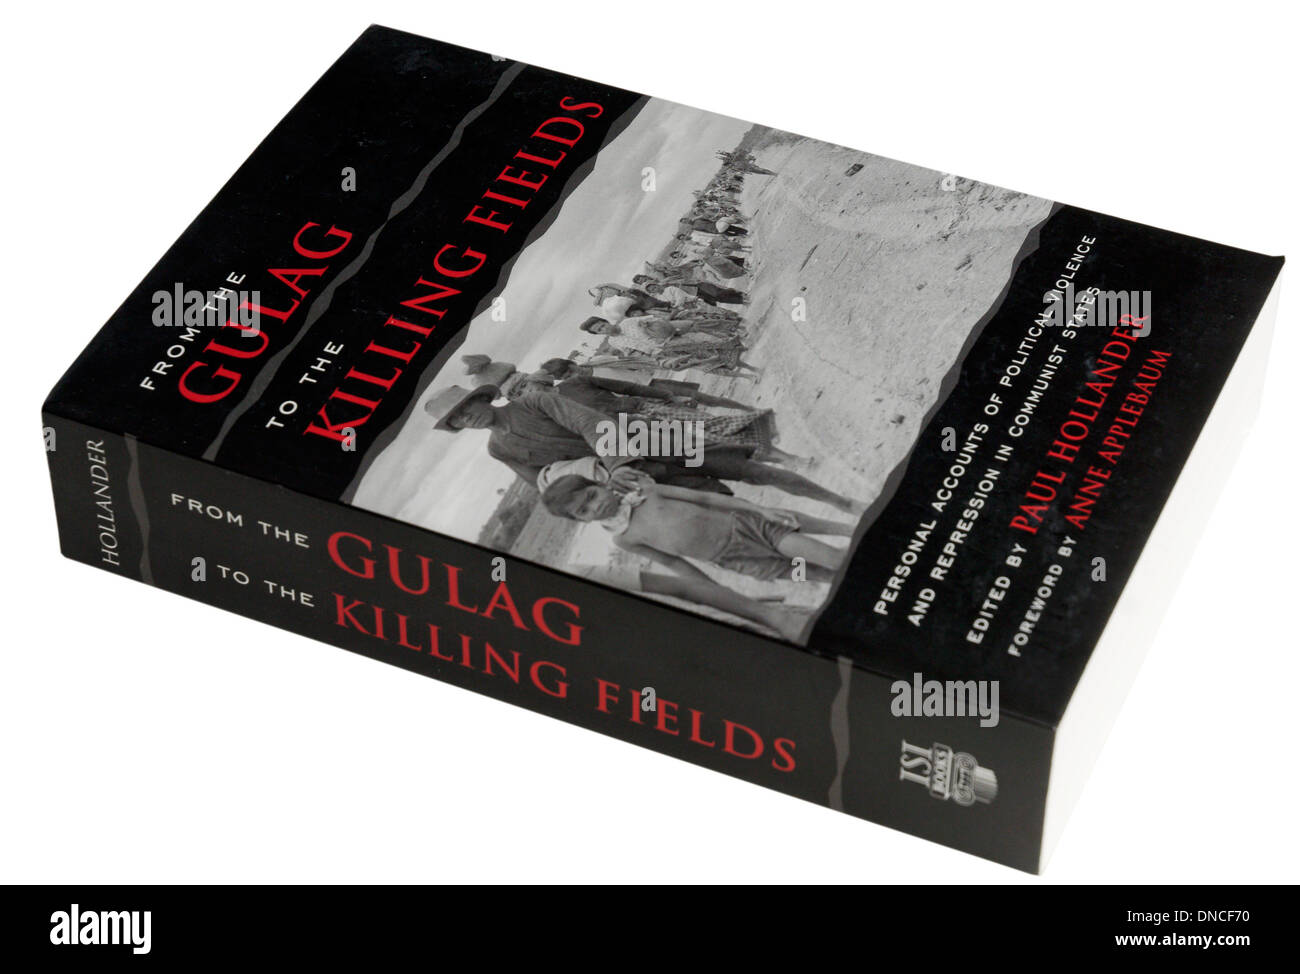 From the Gulag to the Killing Fields by Paul Hollande - Stock Image